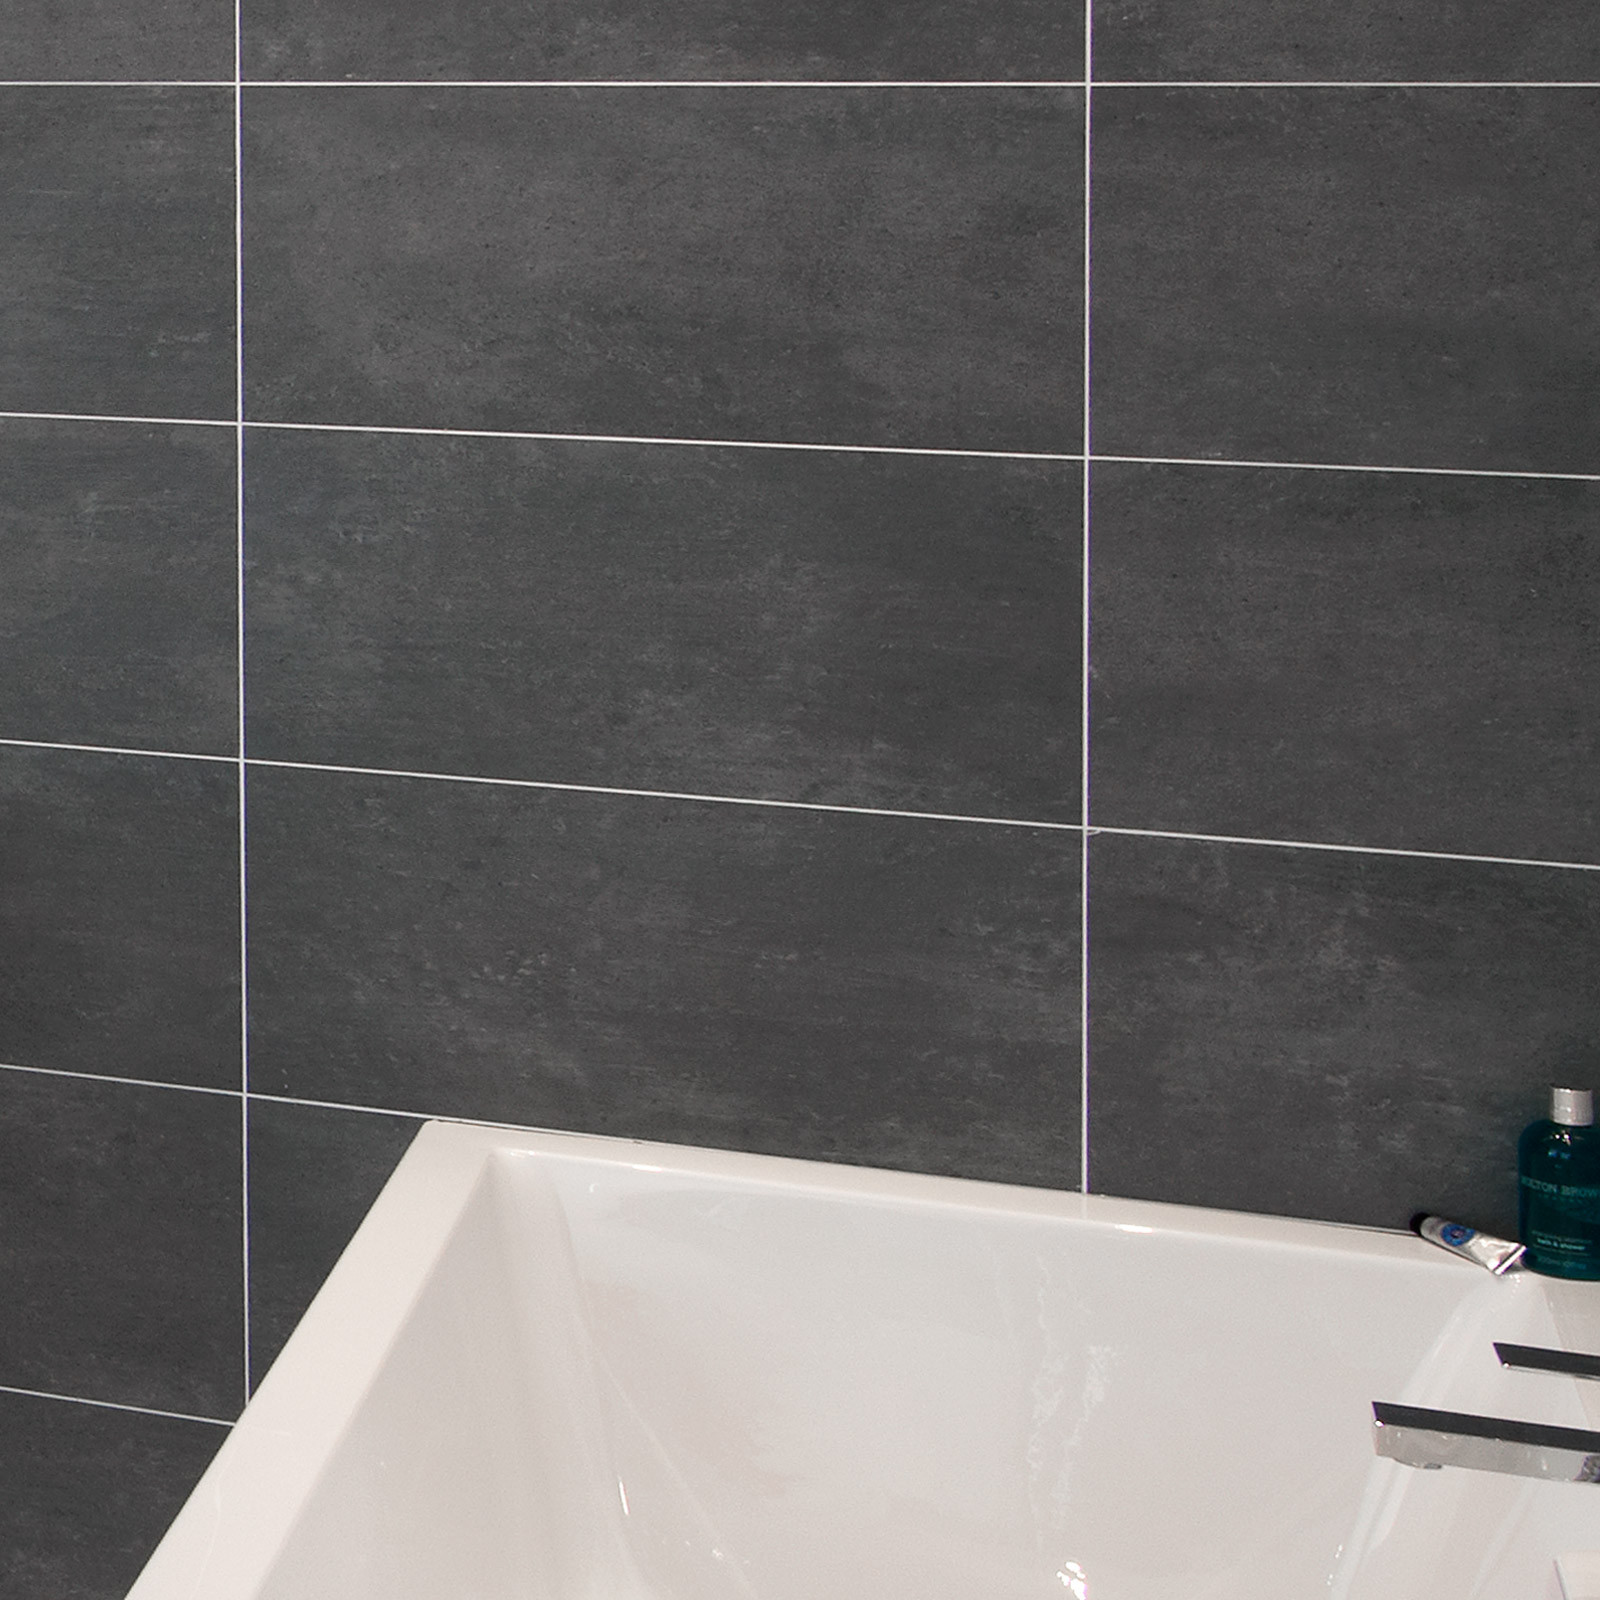 Cementi Dark Grey Porcelain Wall Floor Tile